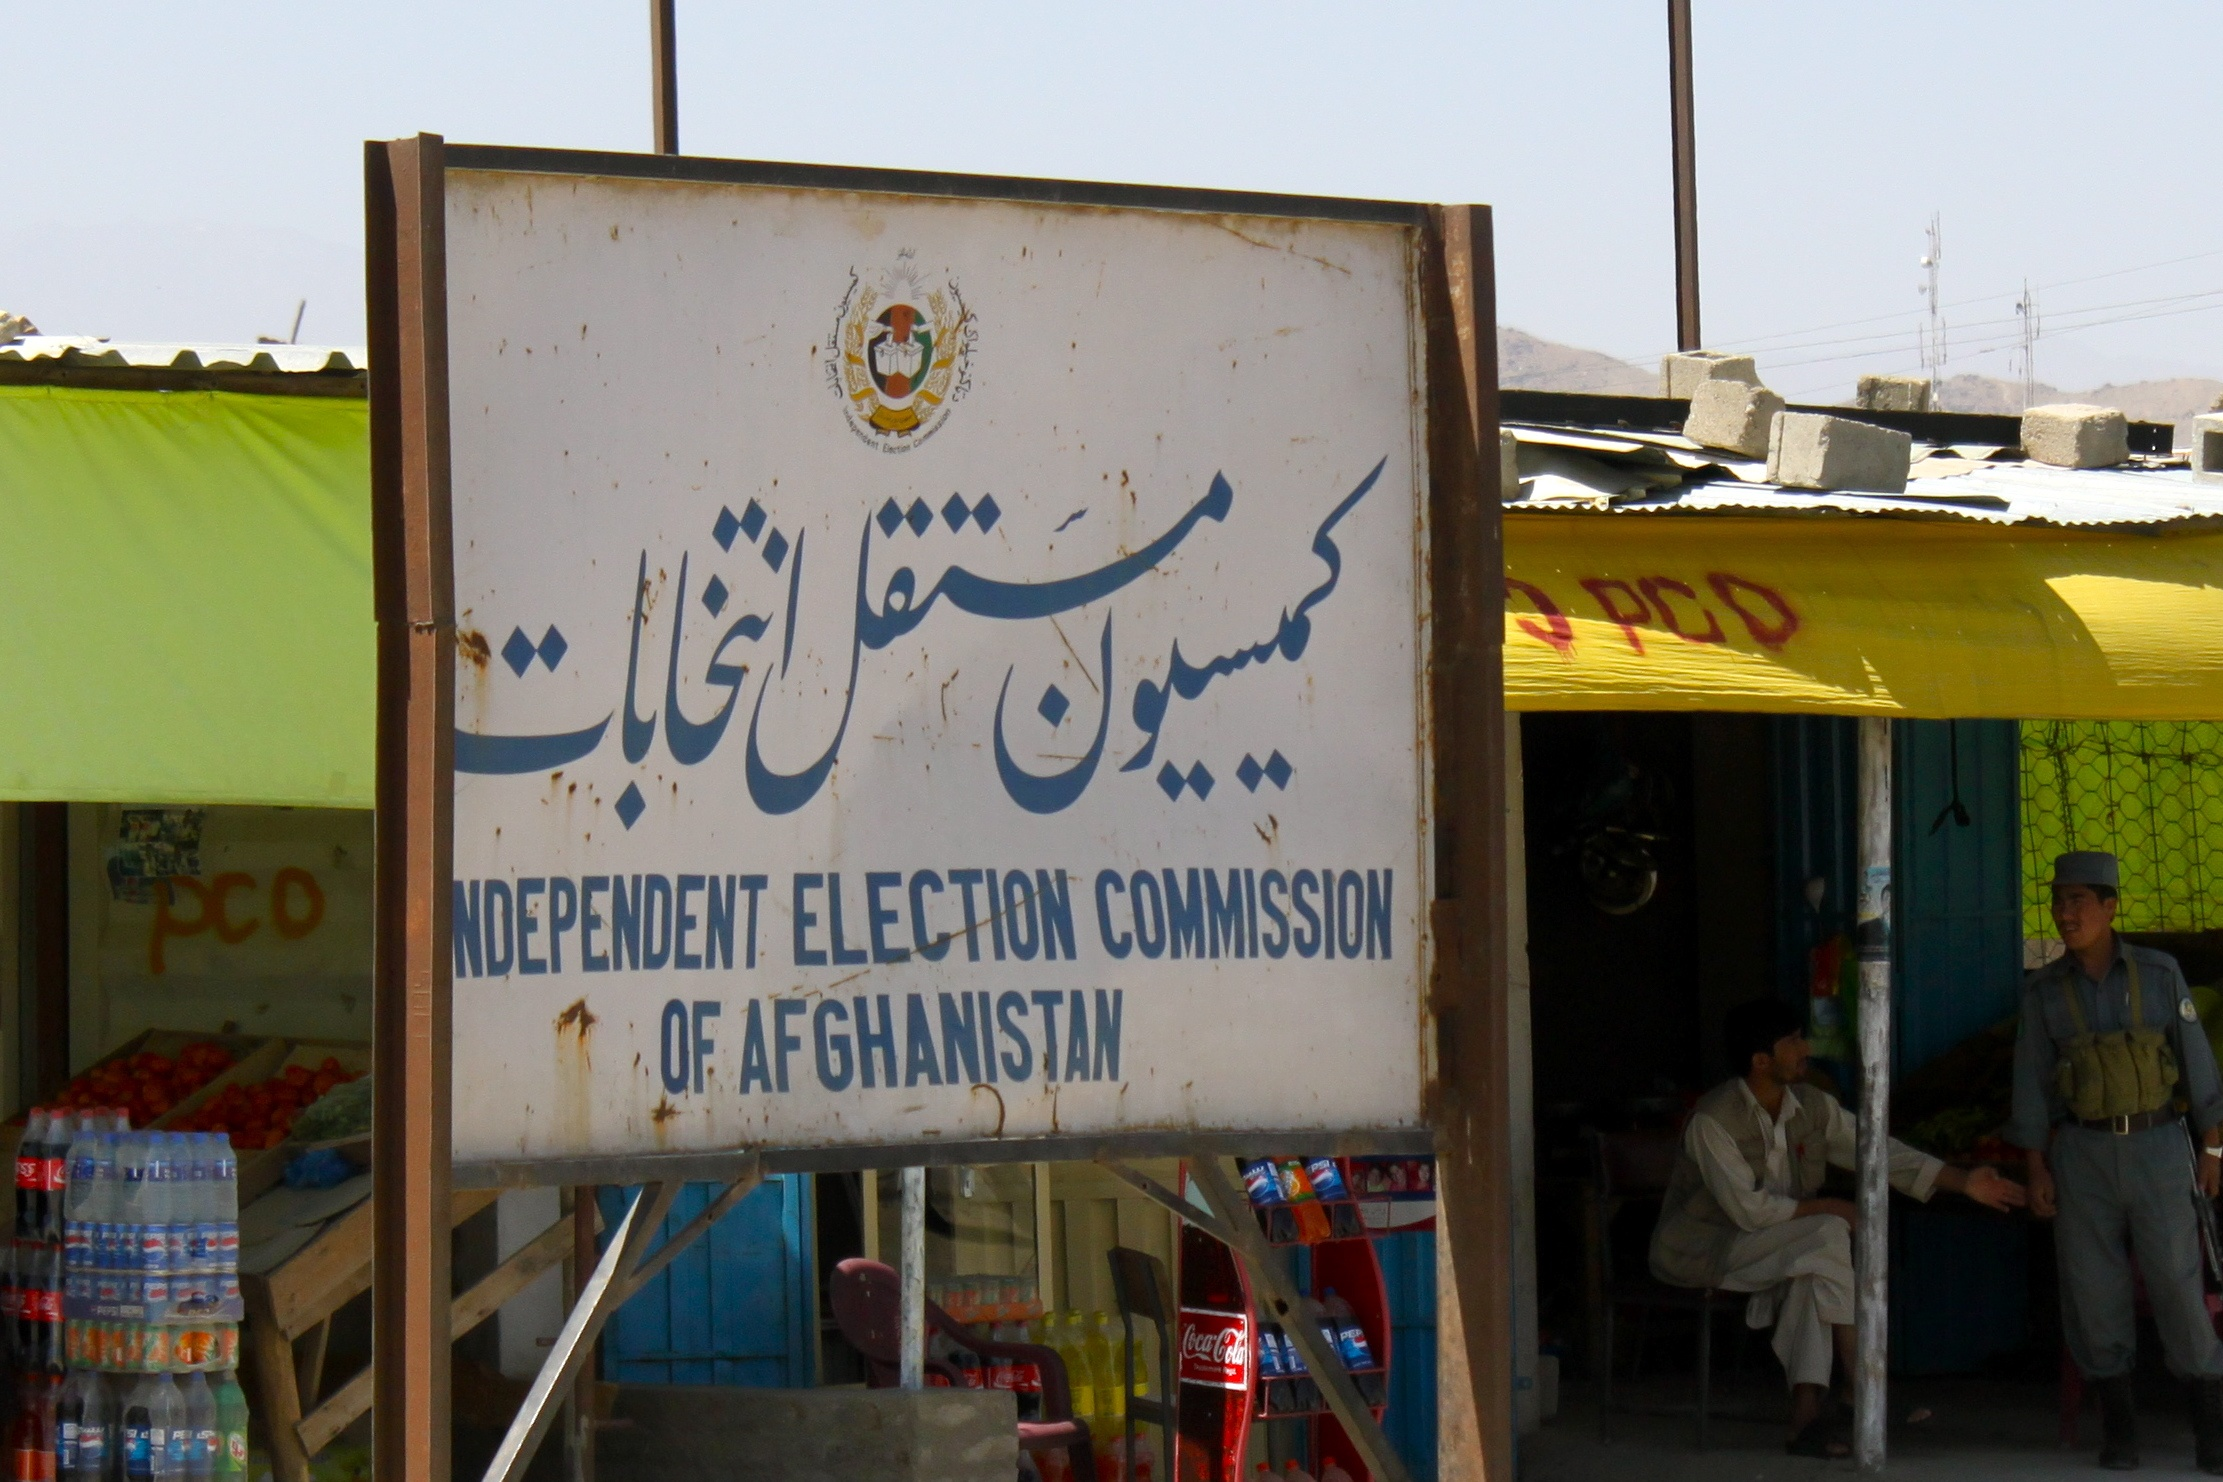 The Independent Election Commission is embroiled in a scandal following the 2014 Afghan vote. Photo via Wikipedia Commons